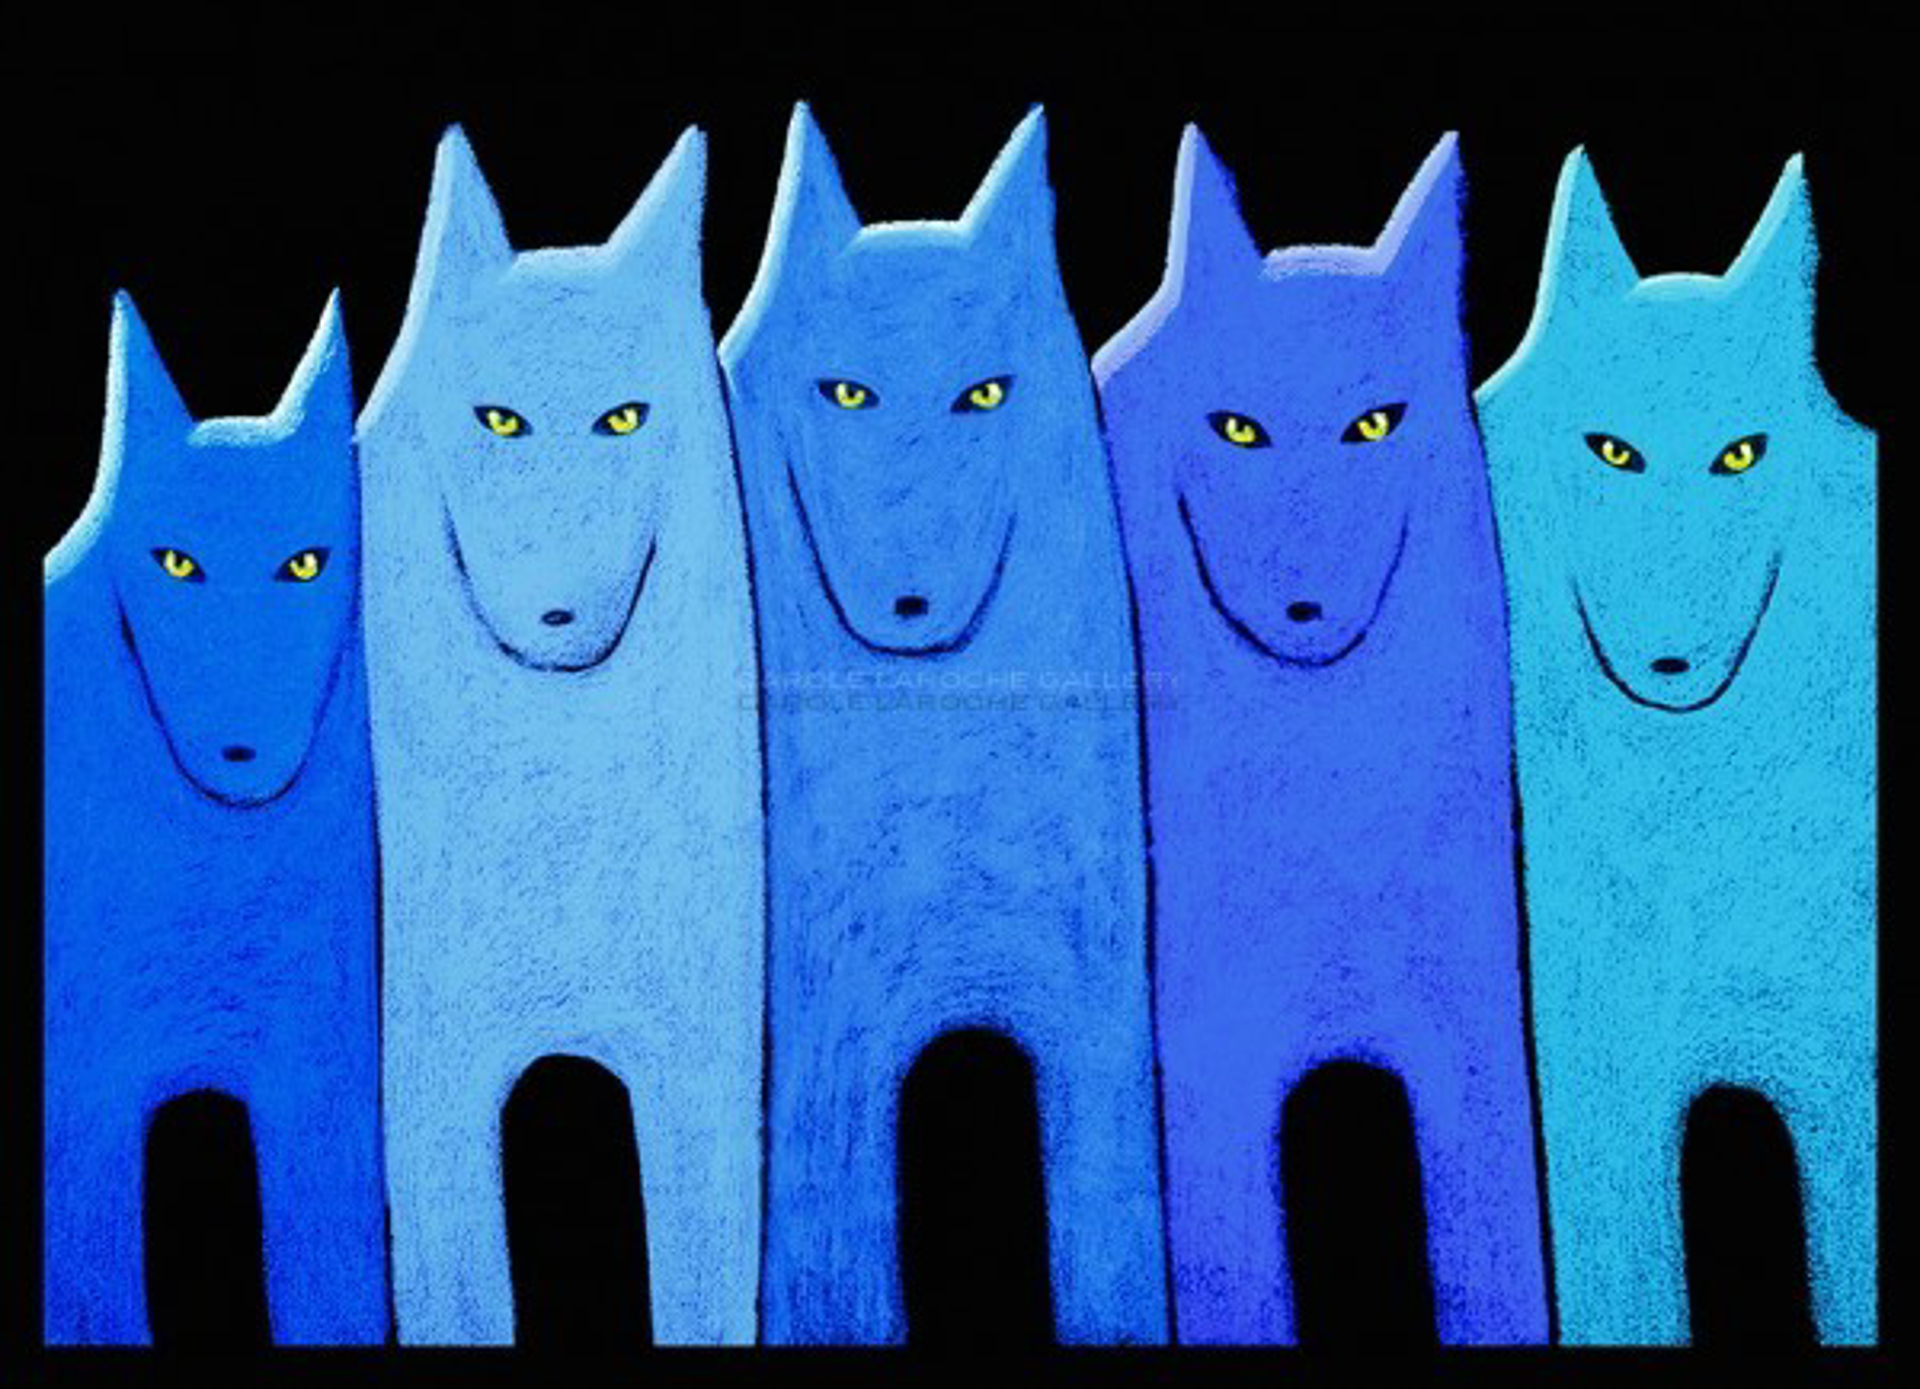 """BLUE WOLF PACK - limited edition giclee on canvas (large) 40"""" x 52"""" $3,700 or (medium) 30""""x42"""" $2400 by Carole LaRoche"""